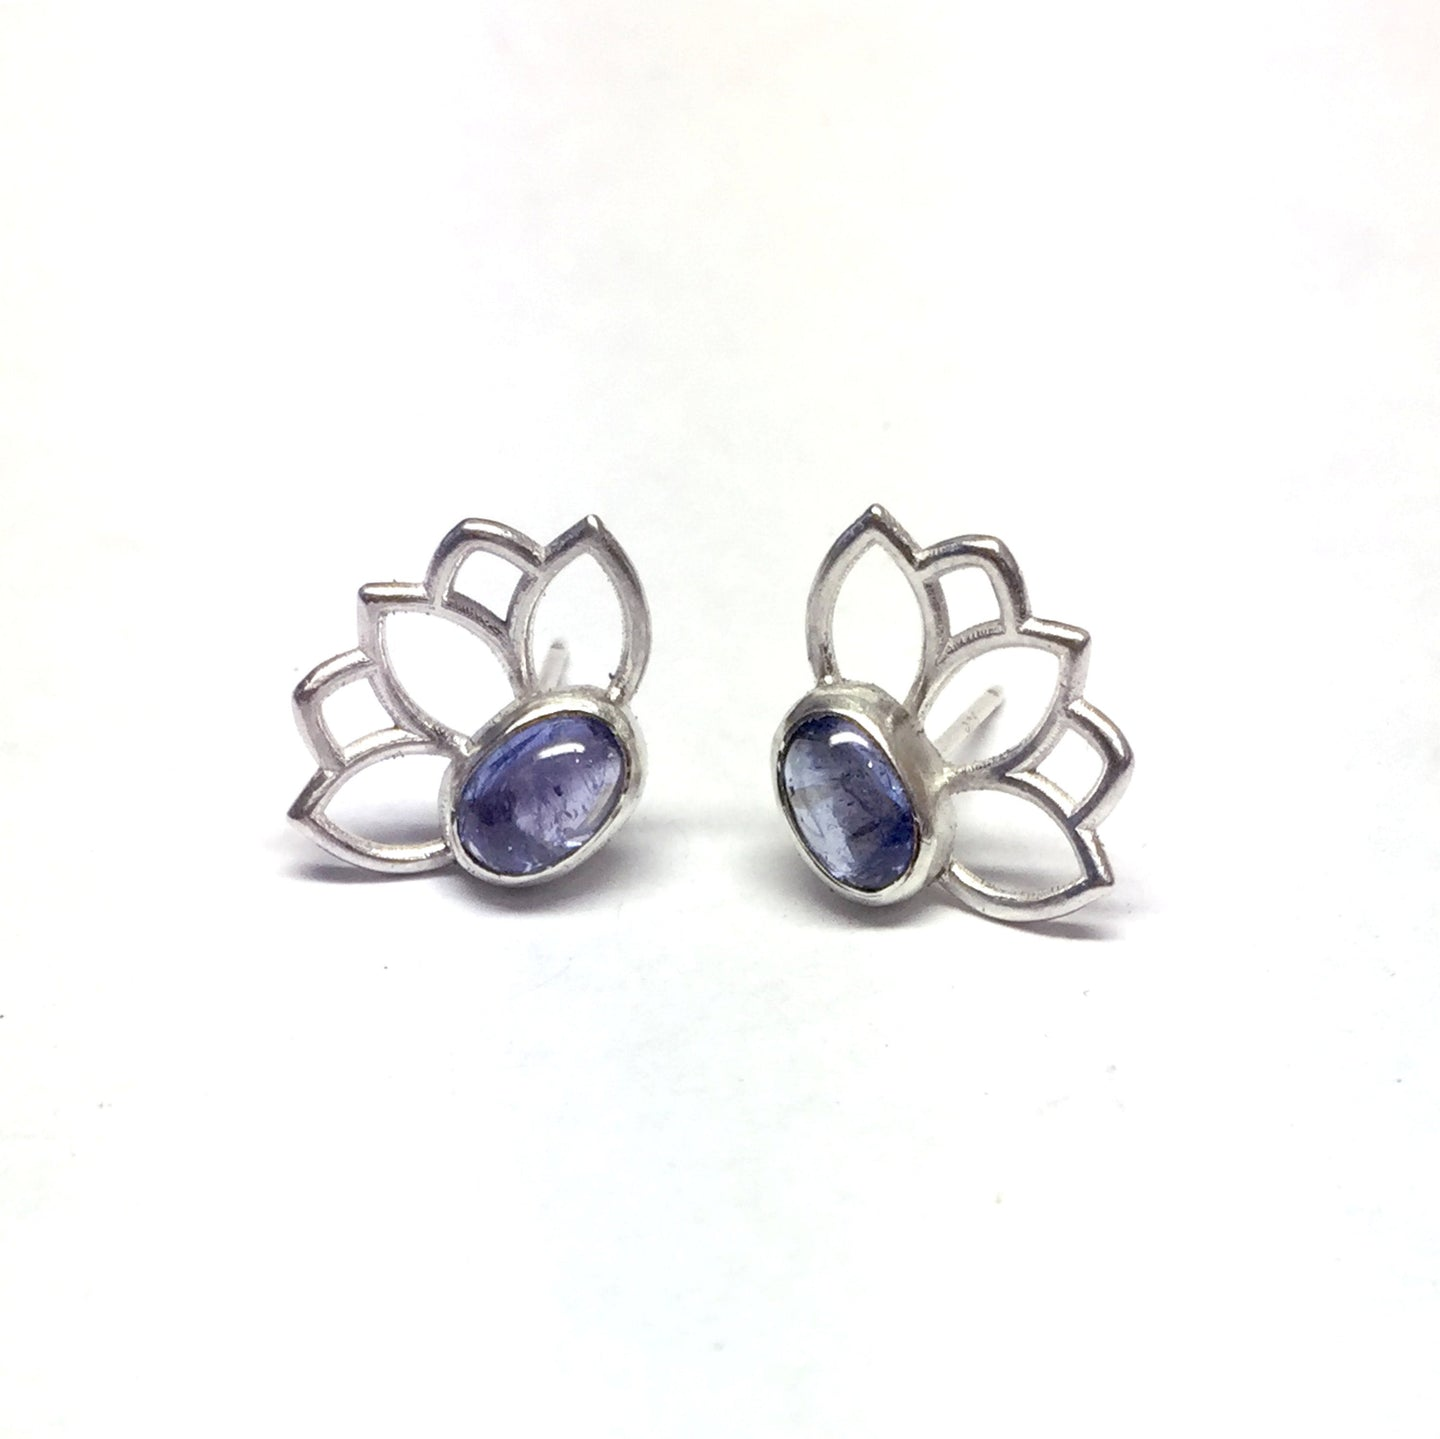 Tanzanite December birthstone, sterling silver studs.